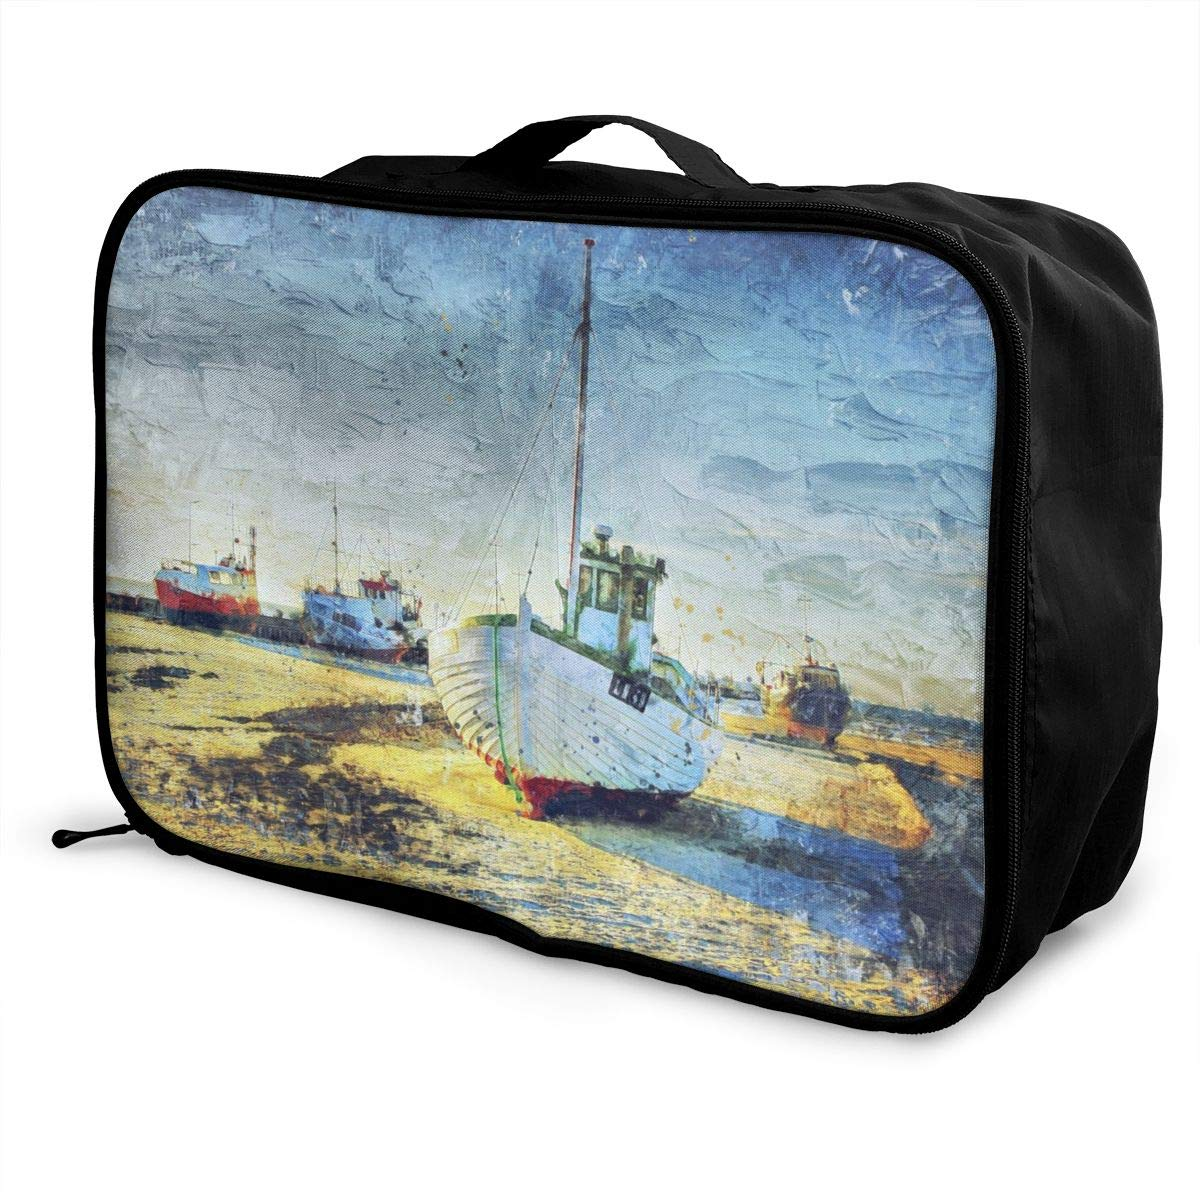 Fishing Boat A Ship Blue Oil Painting Travel Lightweight Waterproof Foldable Storage Carry Luggage Large Capacity Portable Luggage Bag Duffel Bag